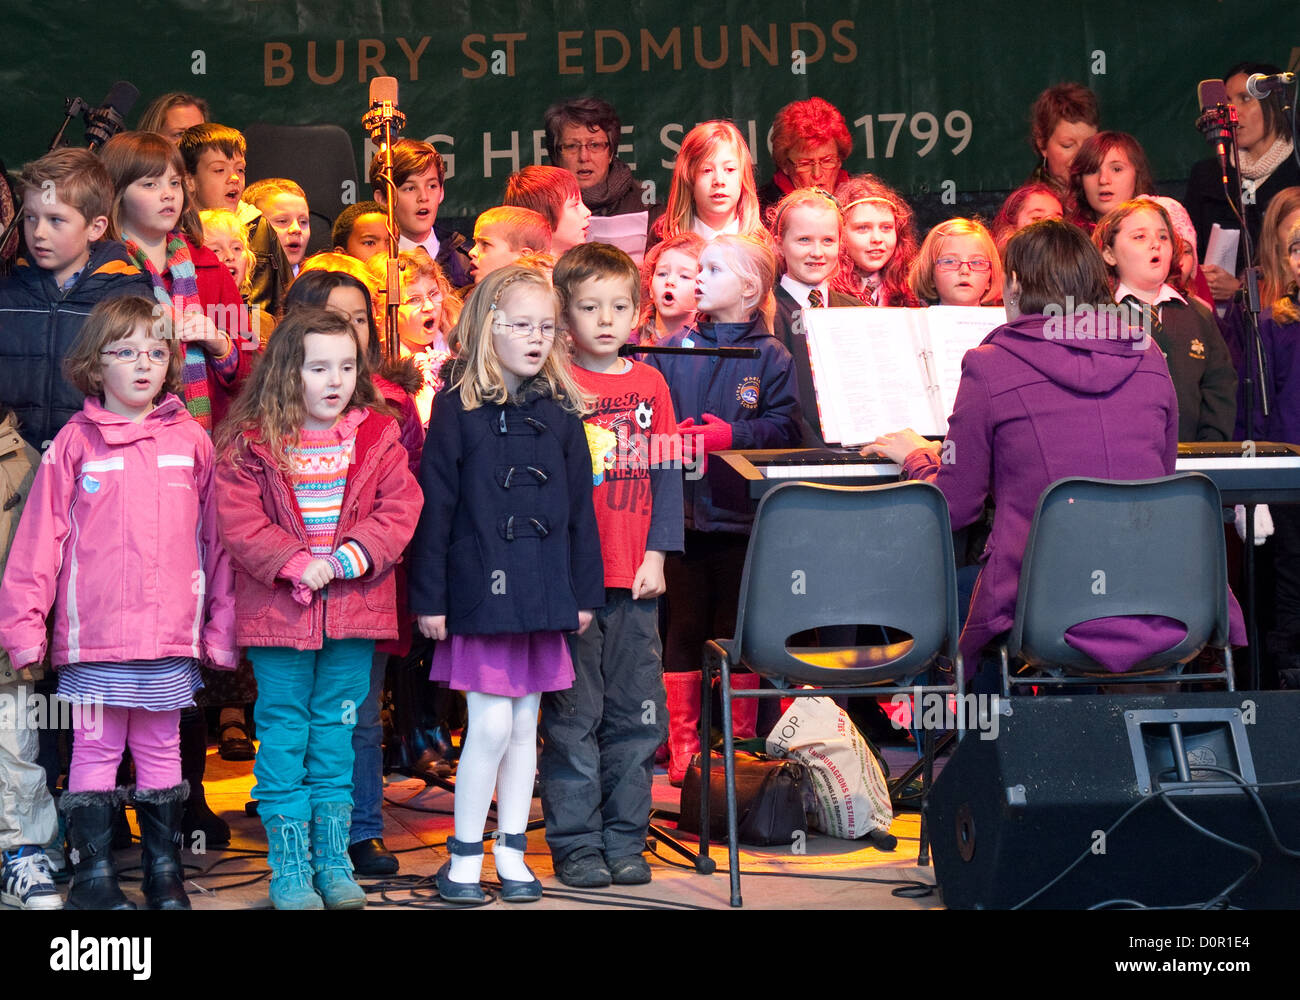 Children singing in a primary school choir, on stage at the Christmas market, Bury St Edmunds, Suffolk UK - Stock Image